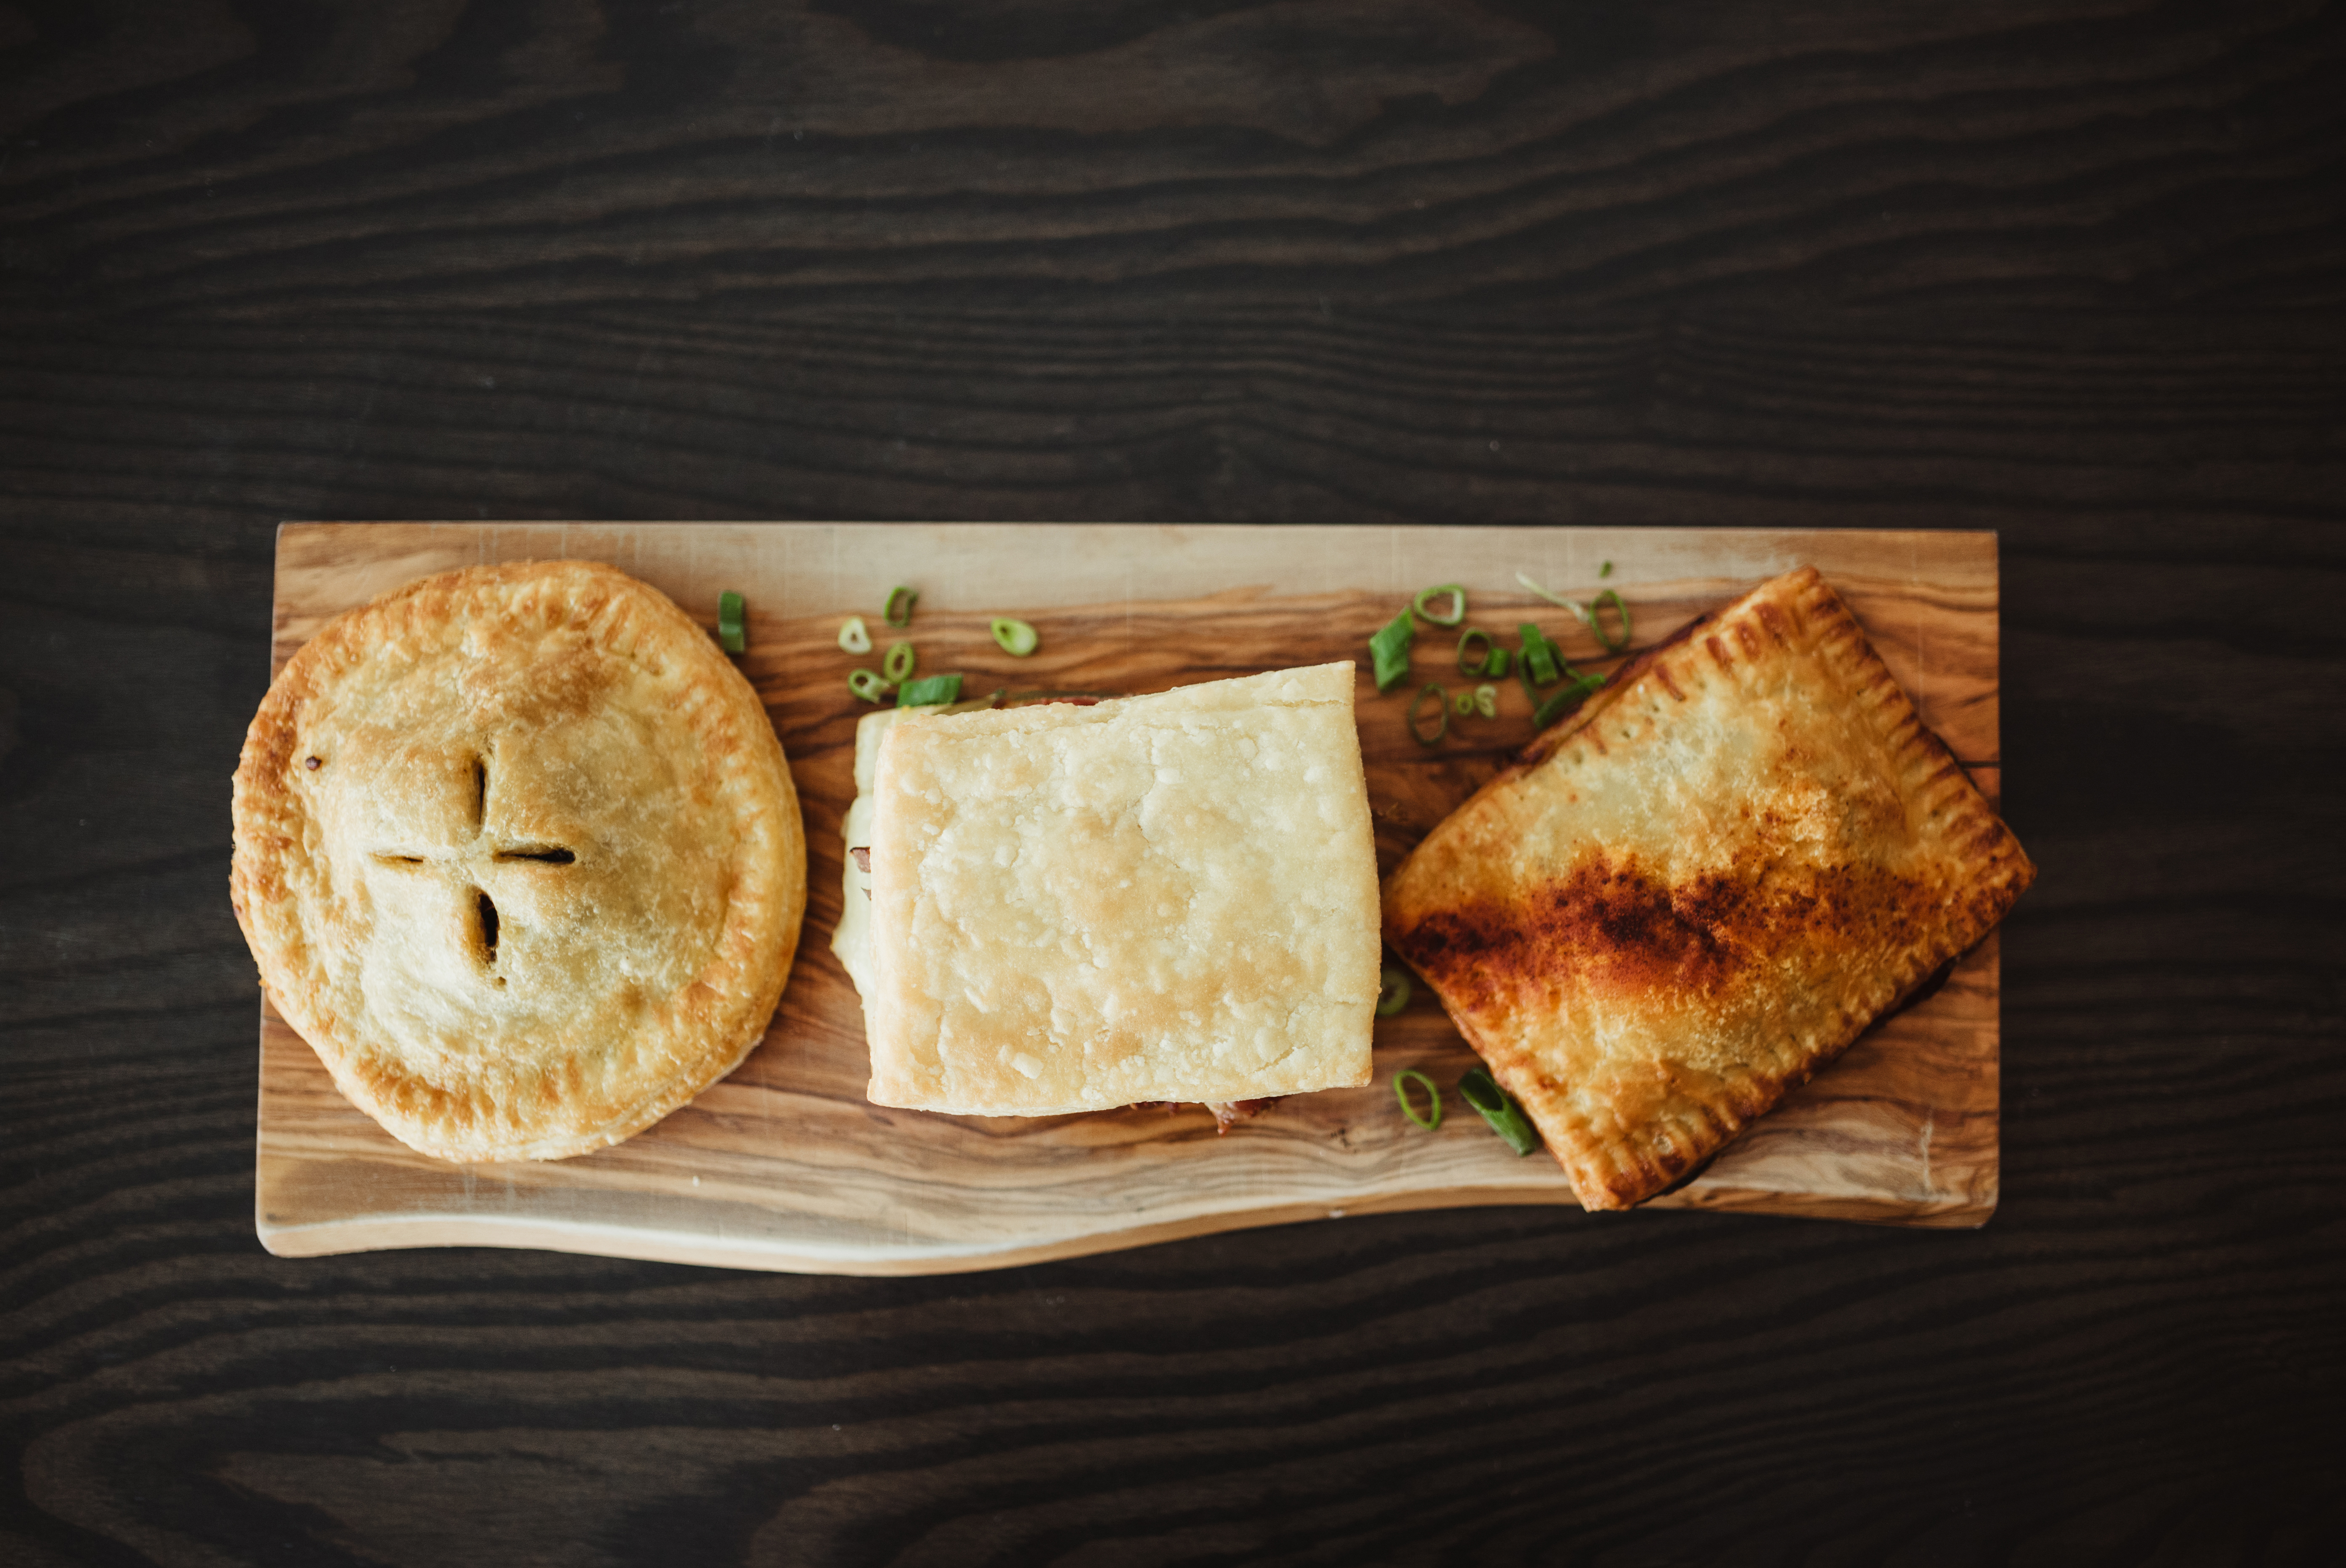 Pressed Pastry, Pot Pie, and a Cuban